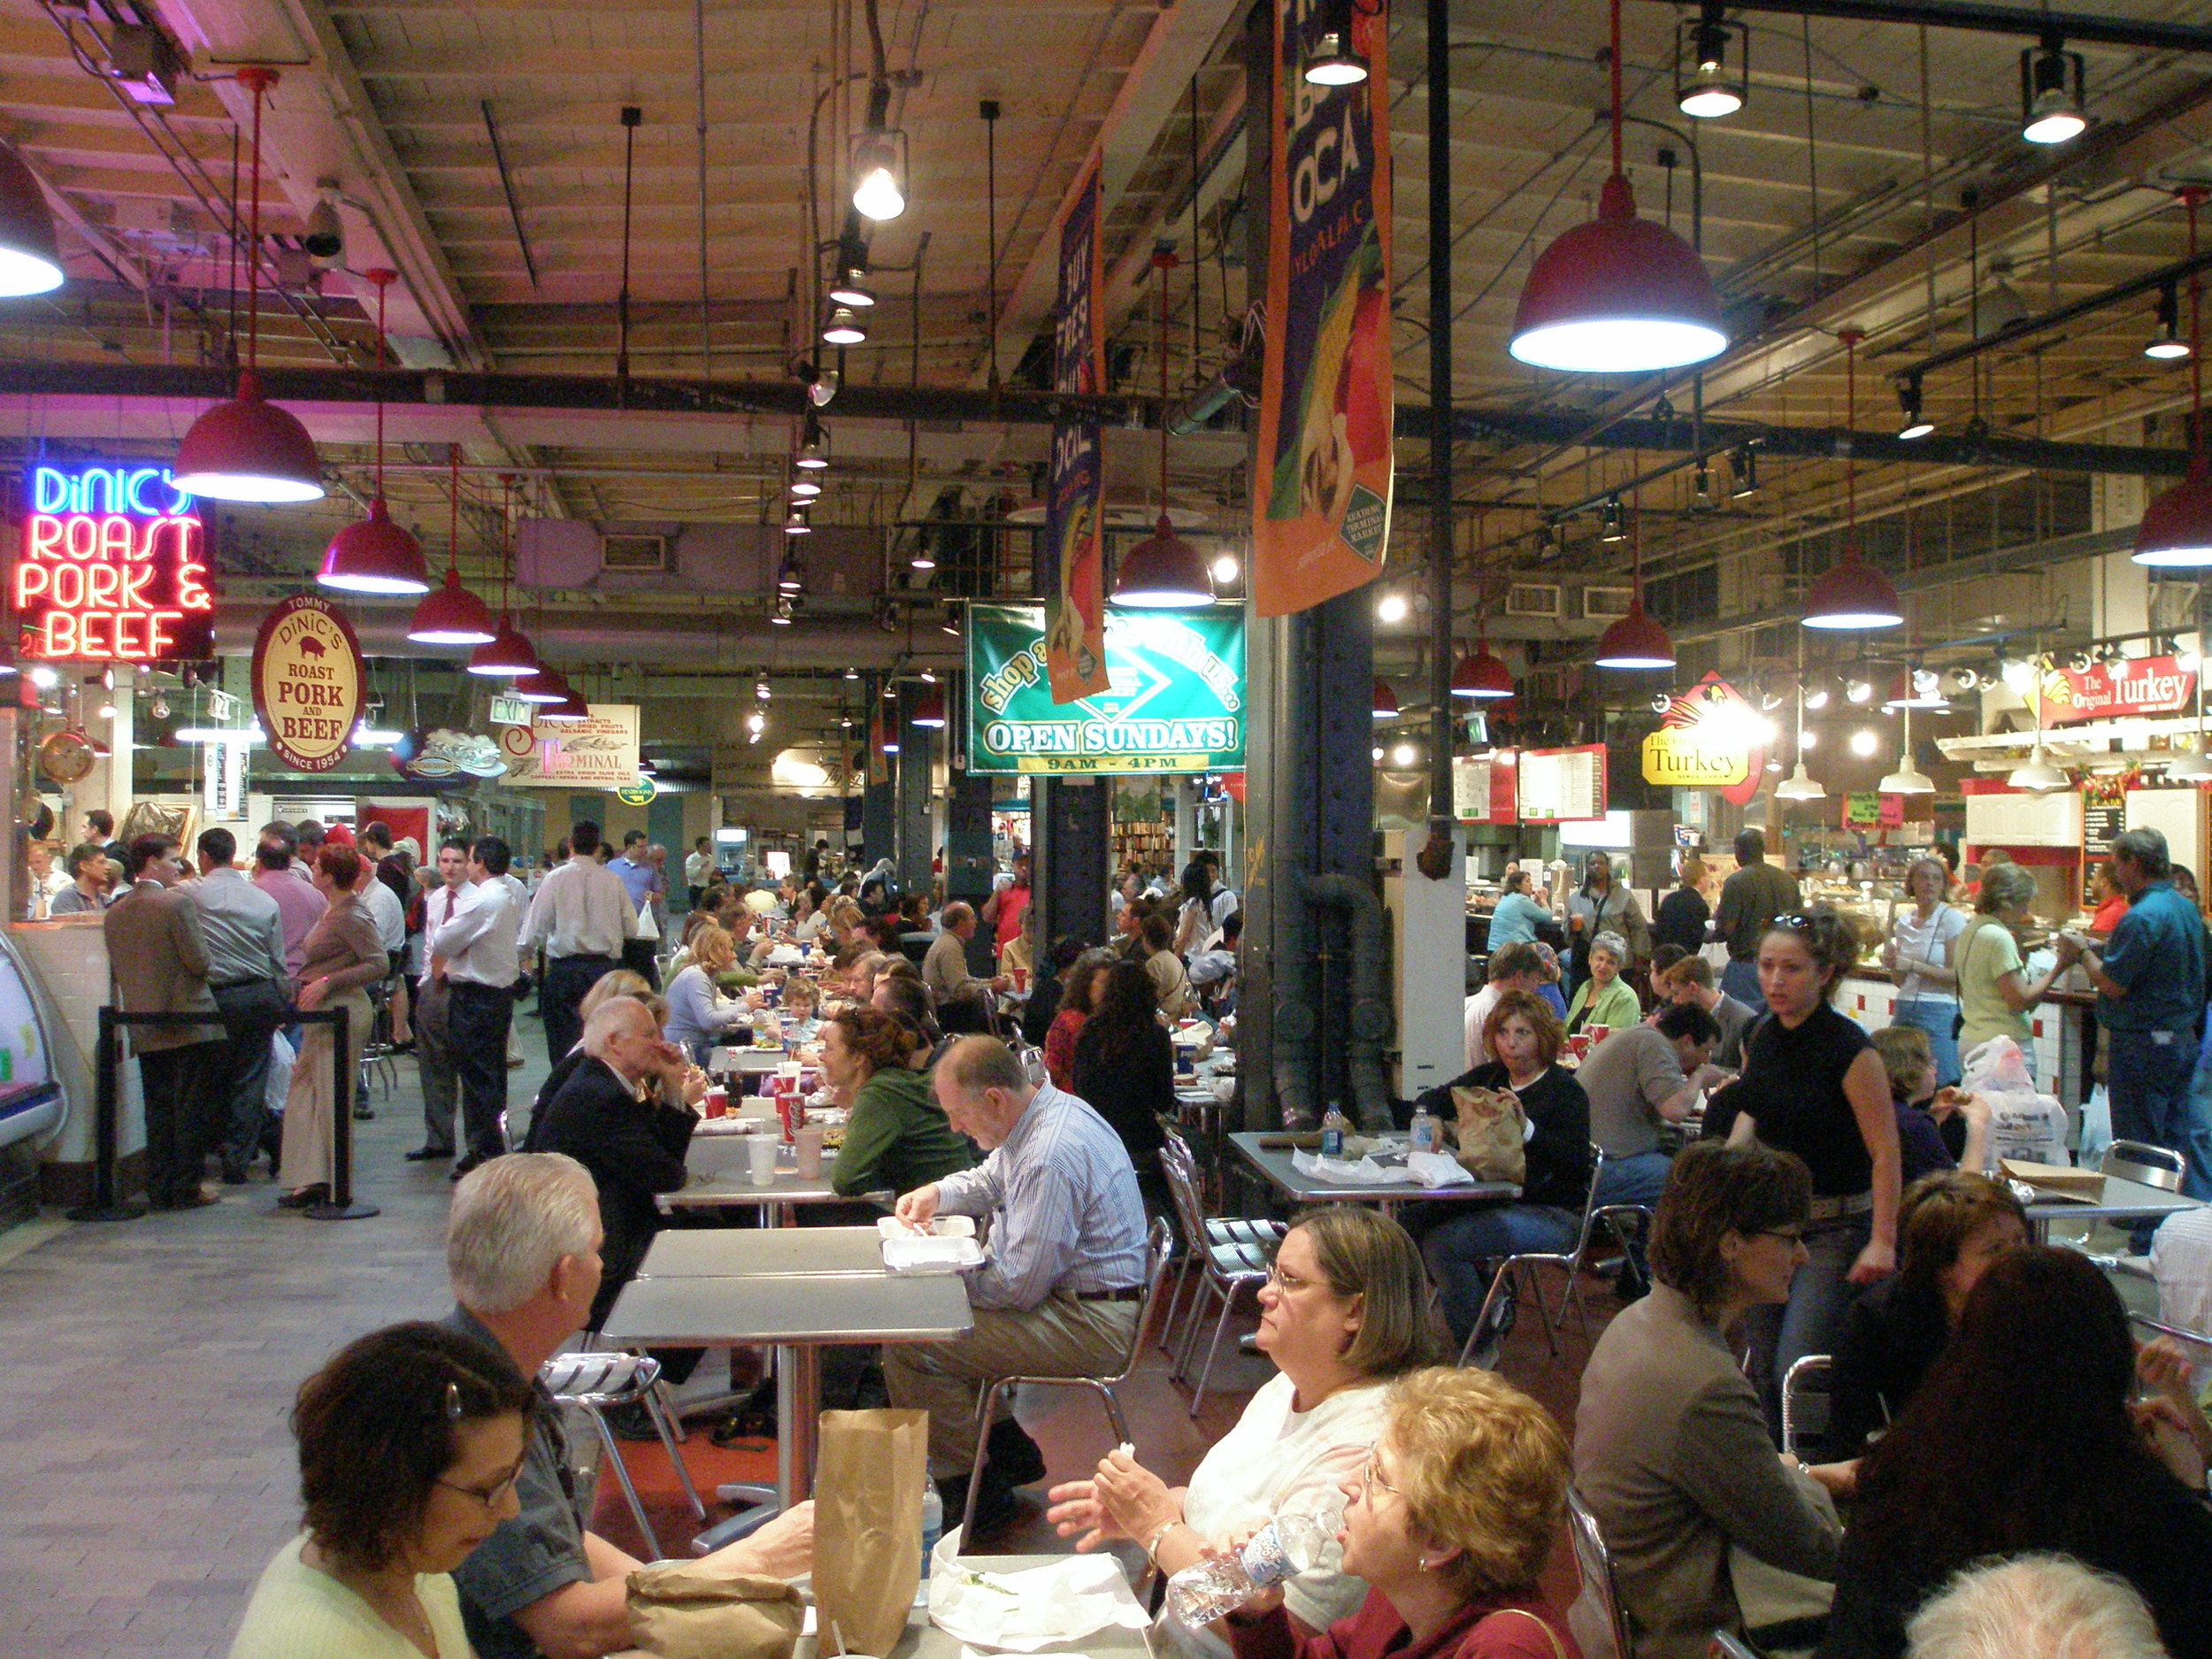 Terminal Market is a great spot for lunch. Wanna go?